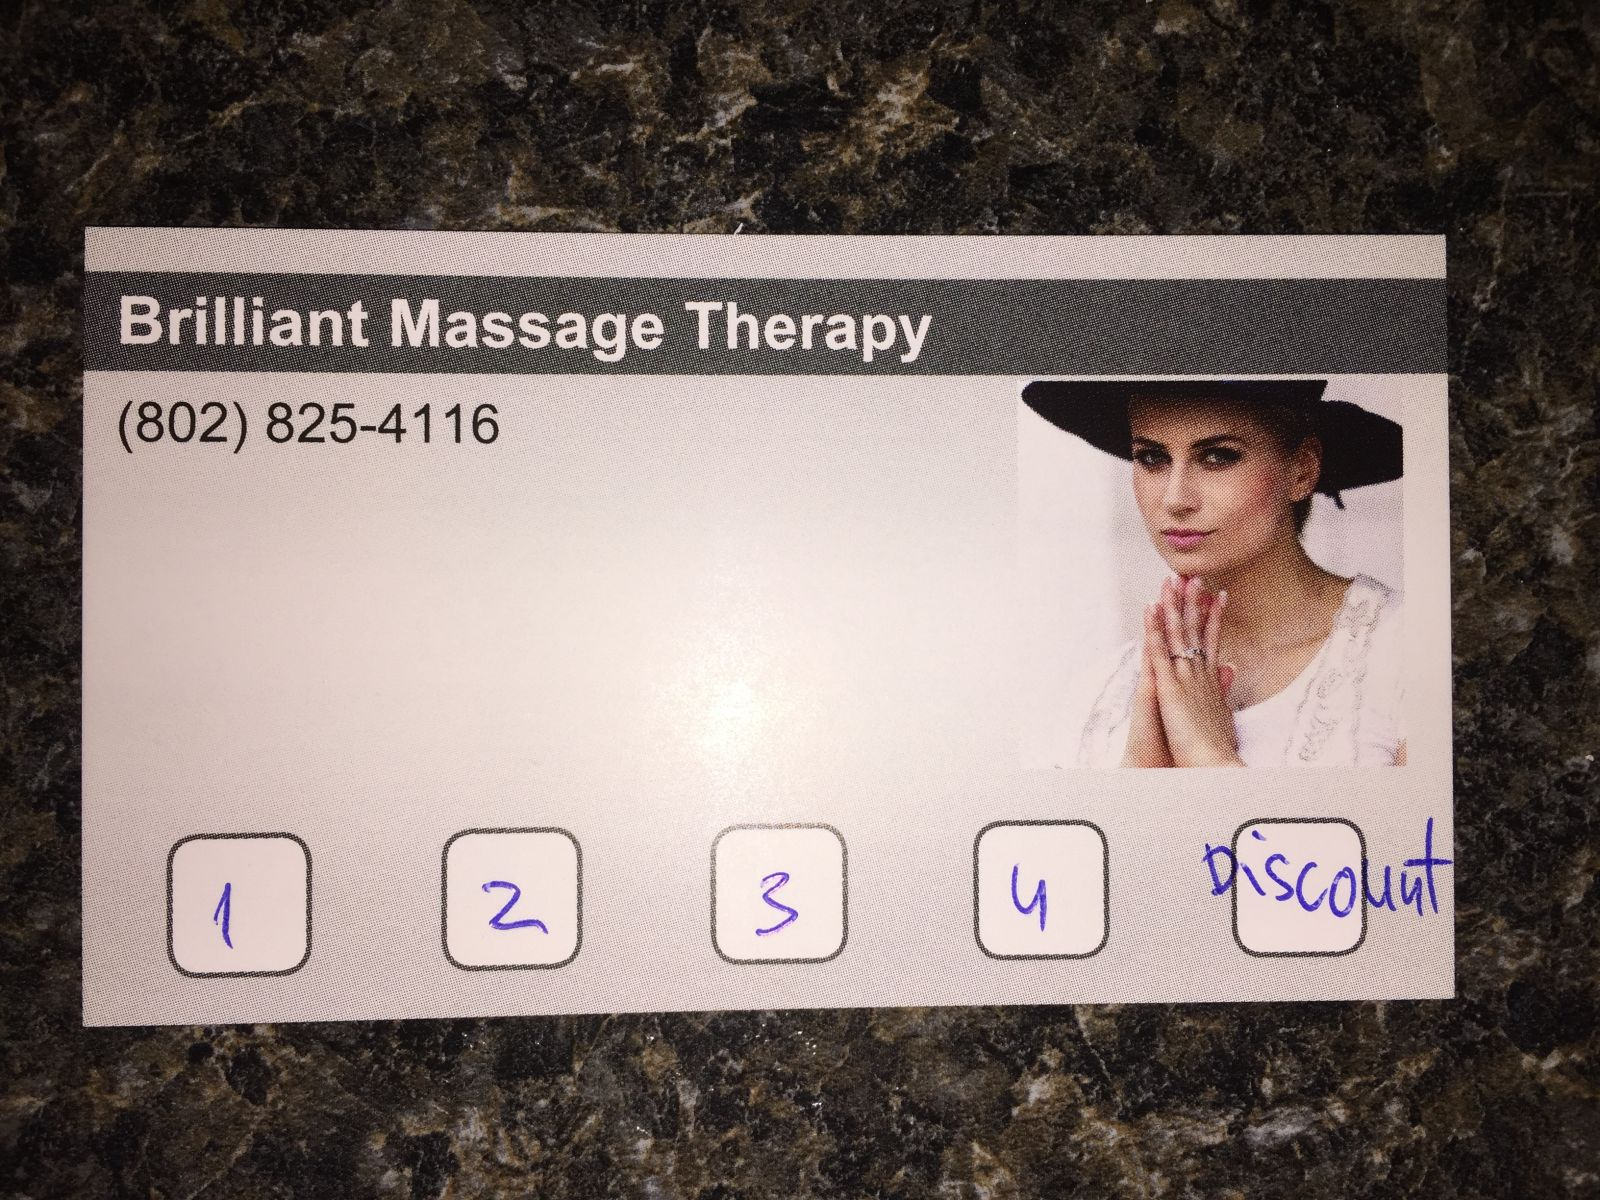 Brilliant Massage Therapy Loyalty Card